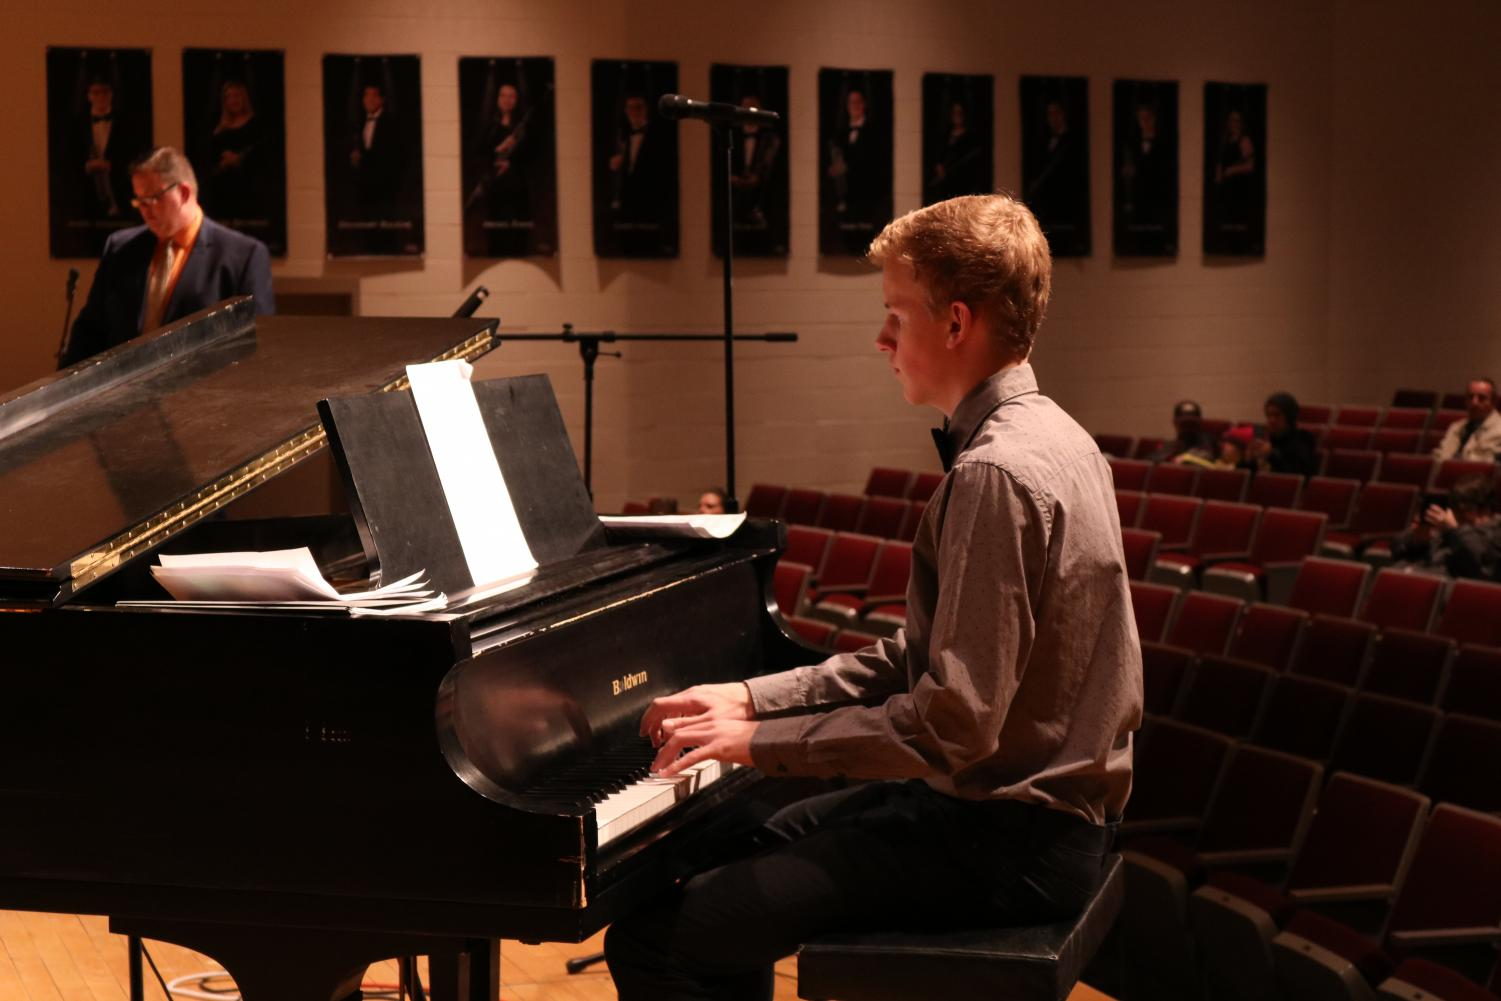 Senior Evan Brummer plays piano in the AHS Jazz Band. This year, the Jazz Band's compositions include a rendition of